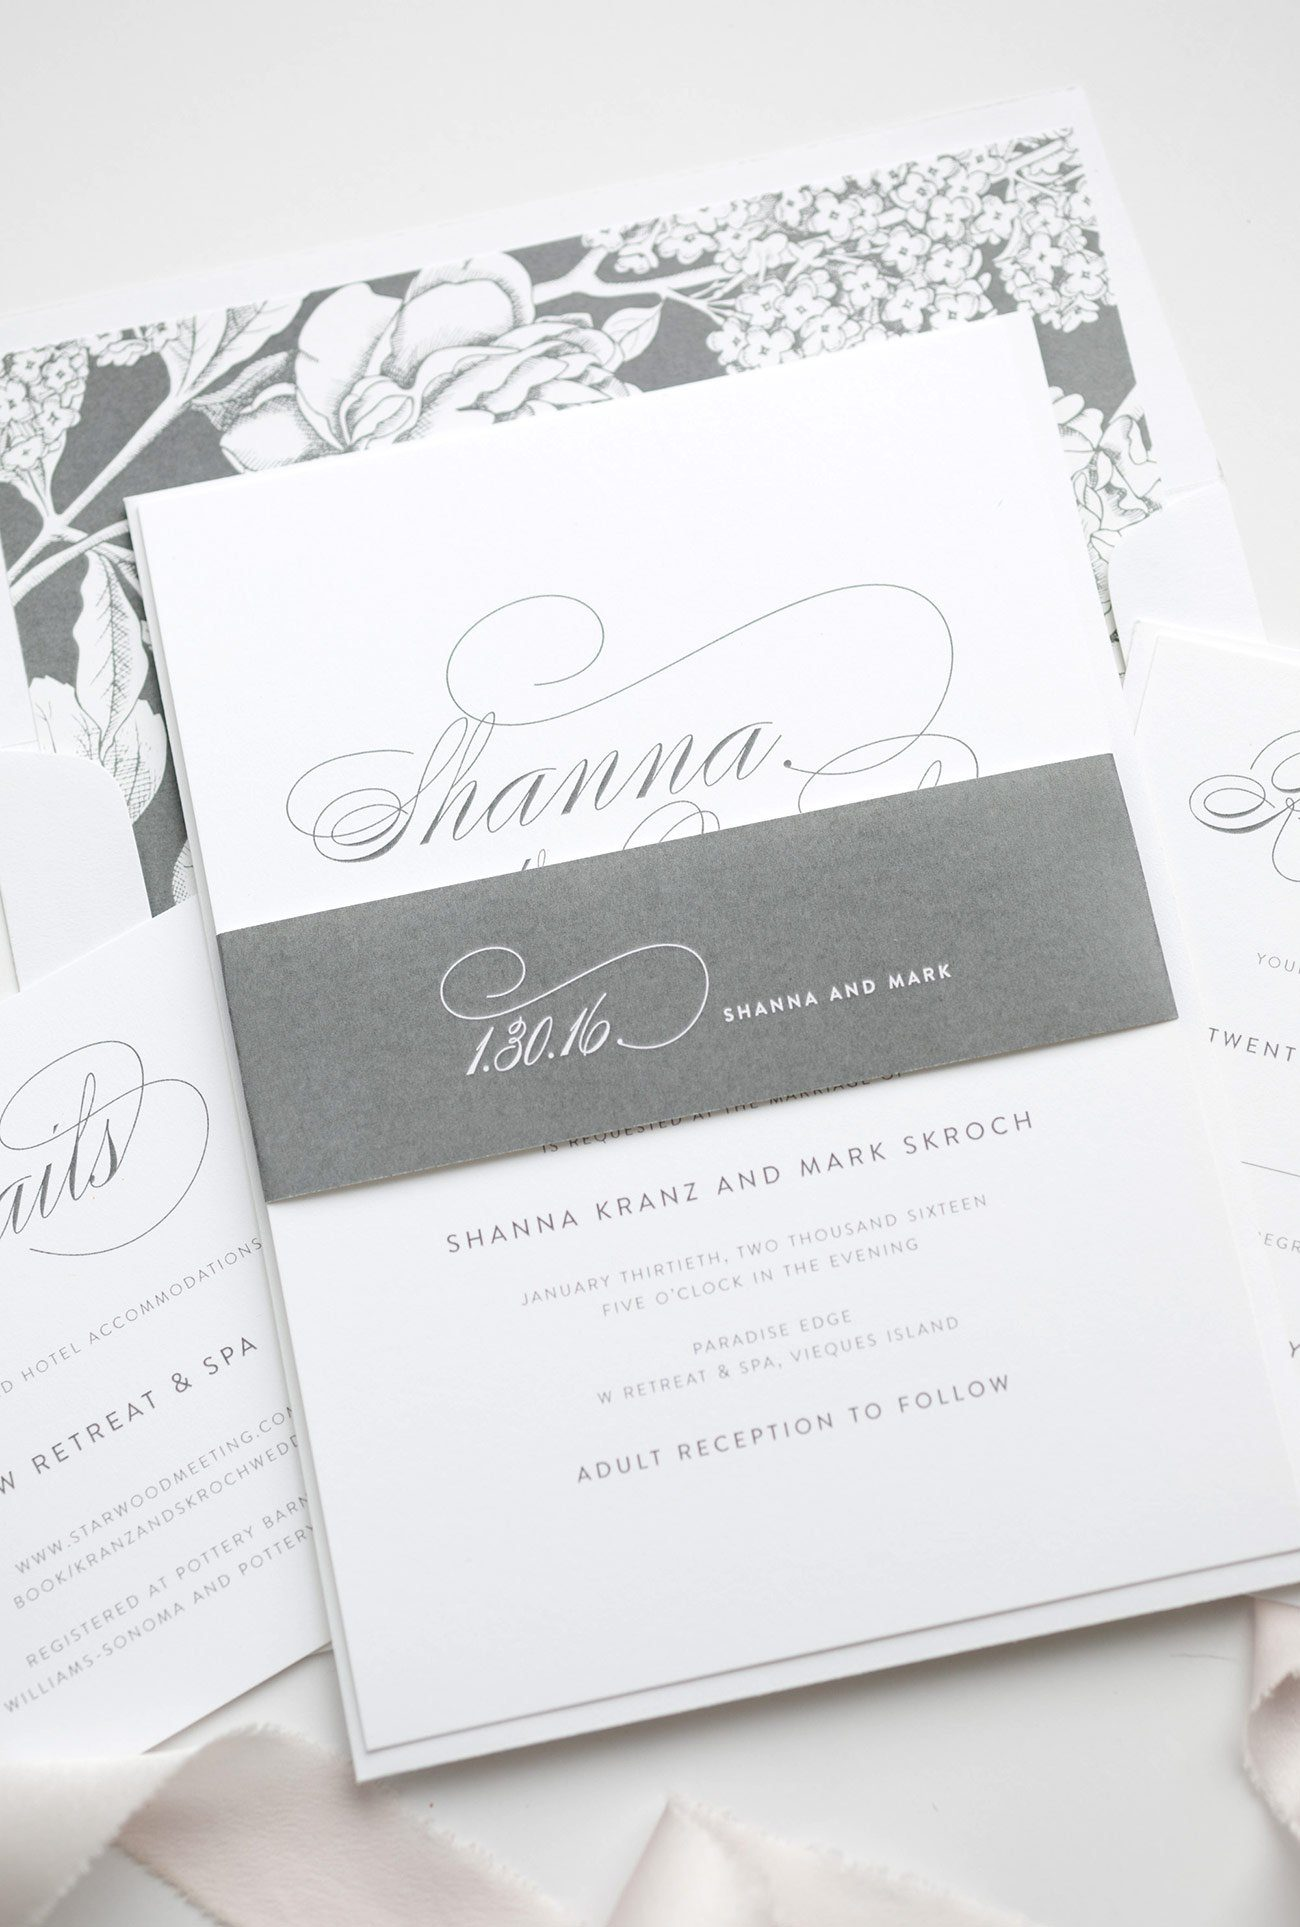 Classic Wedding Invitations in Gray with Floral Accents